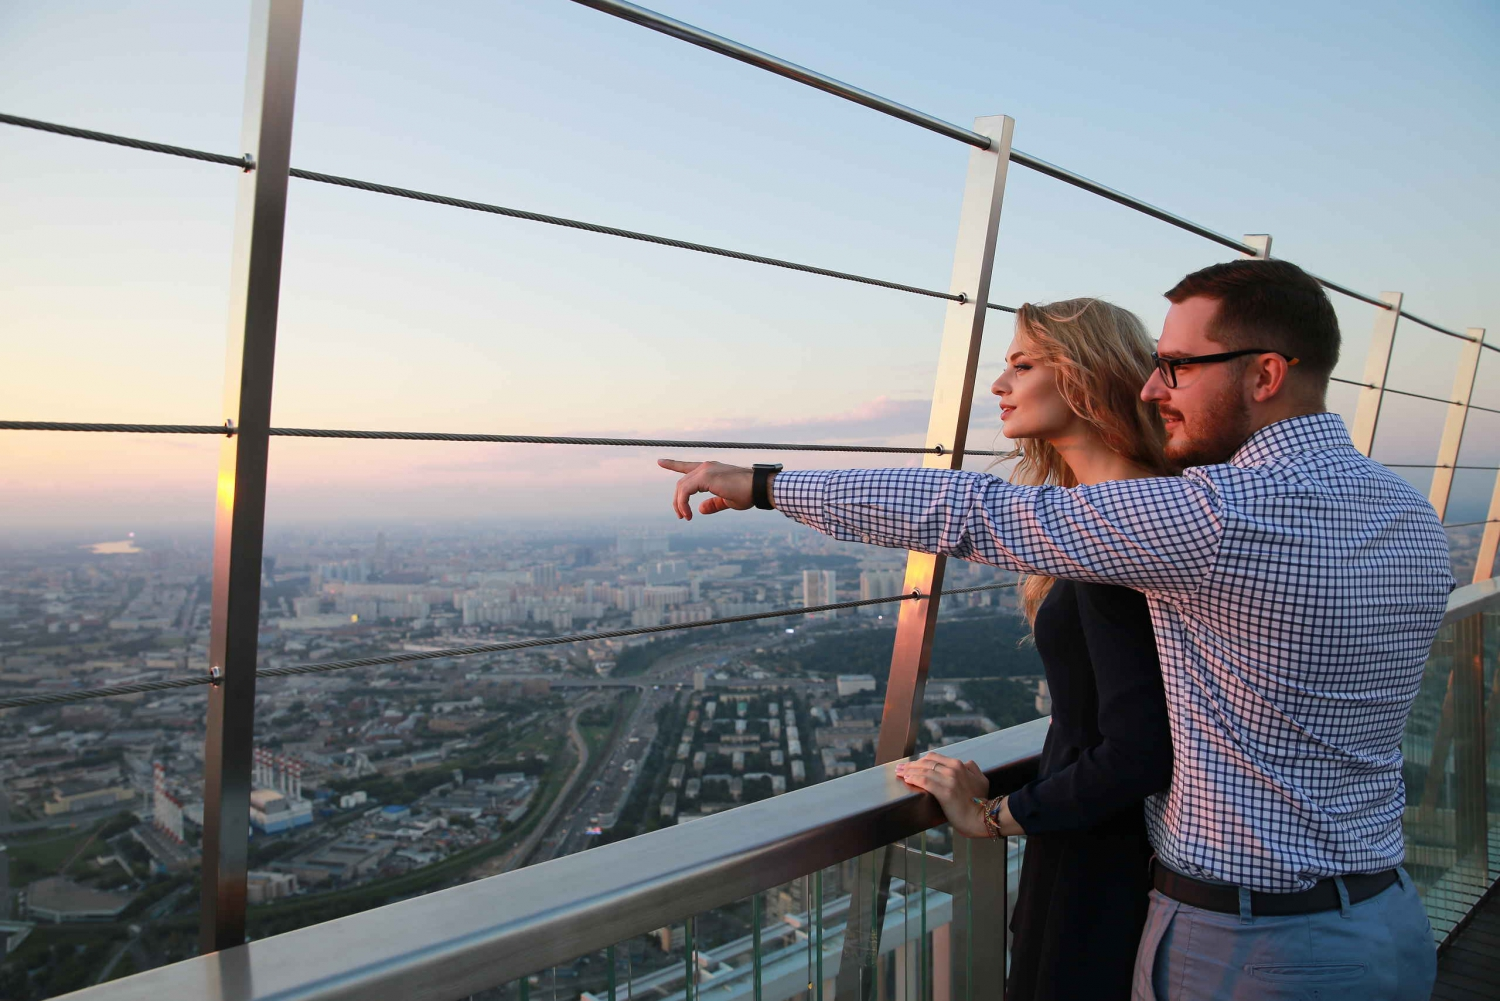 92nd Floor Open Observation Deck in Oko Tower